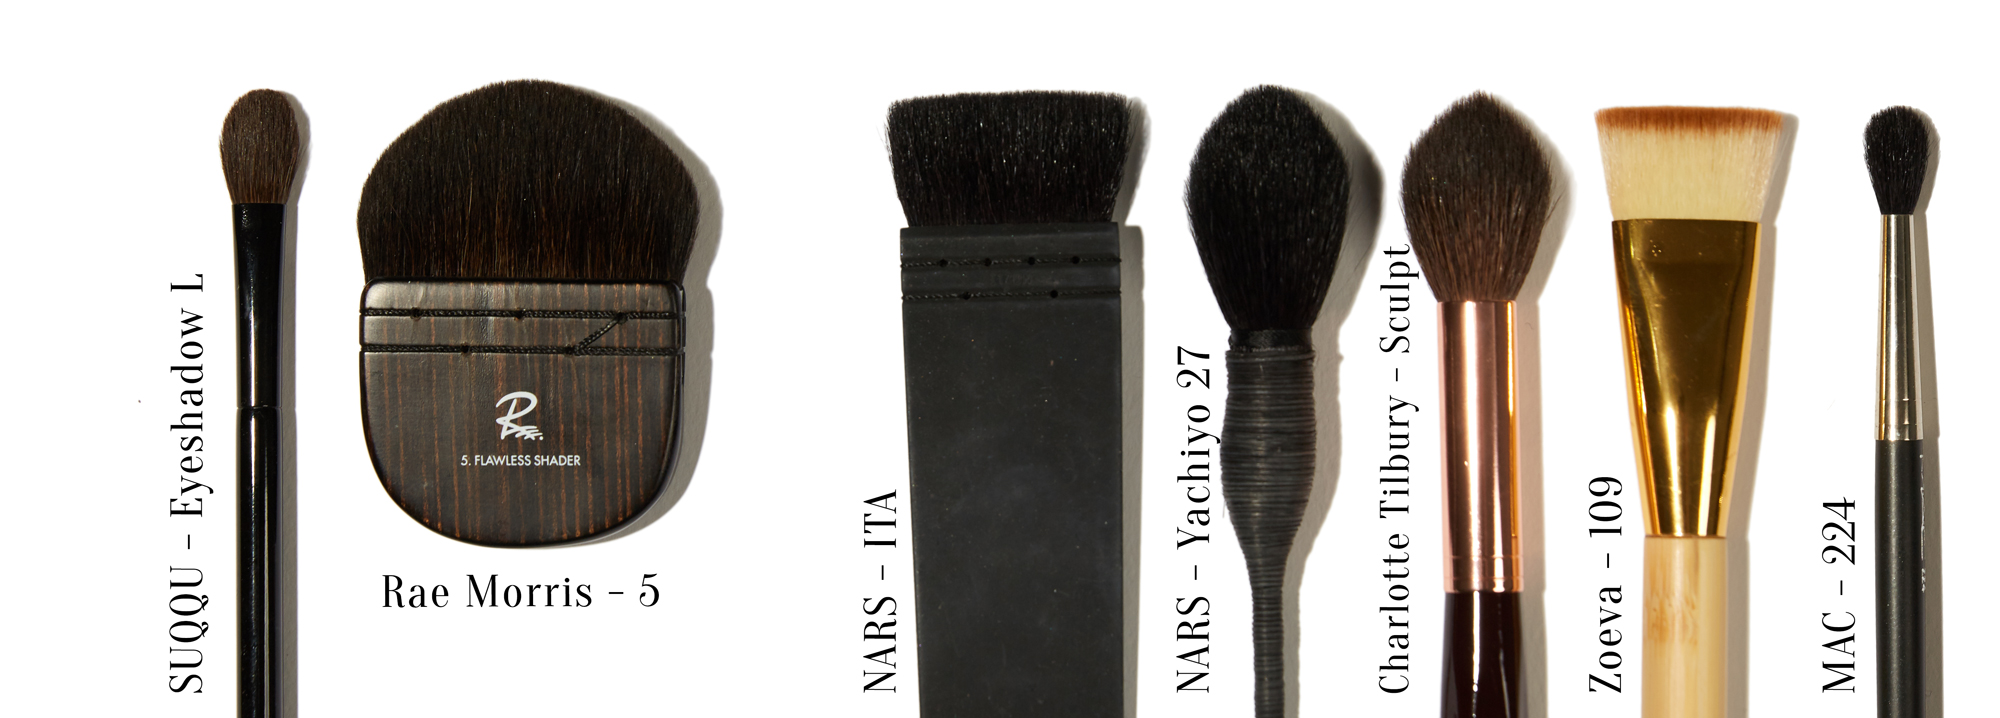 Japanese Brush Starter Kit – Face Brushes